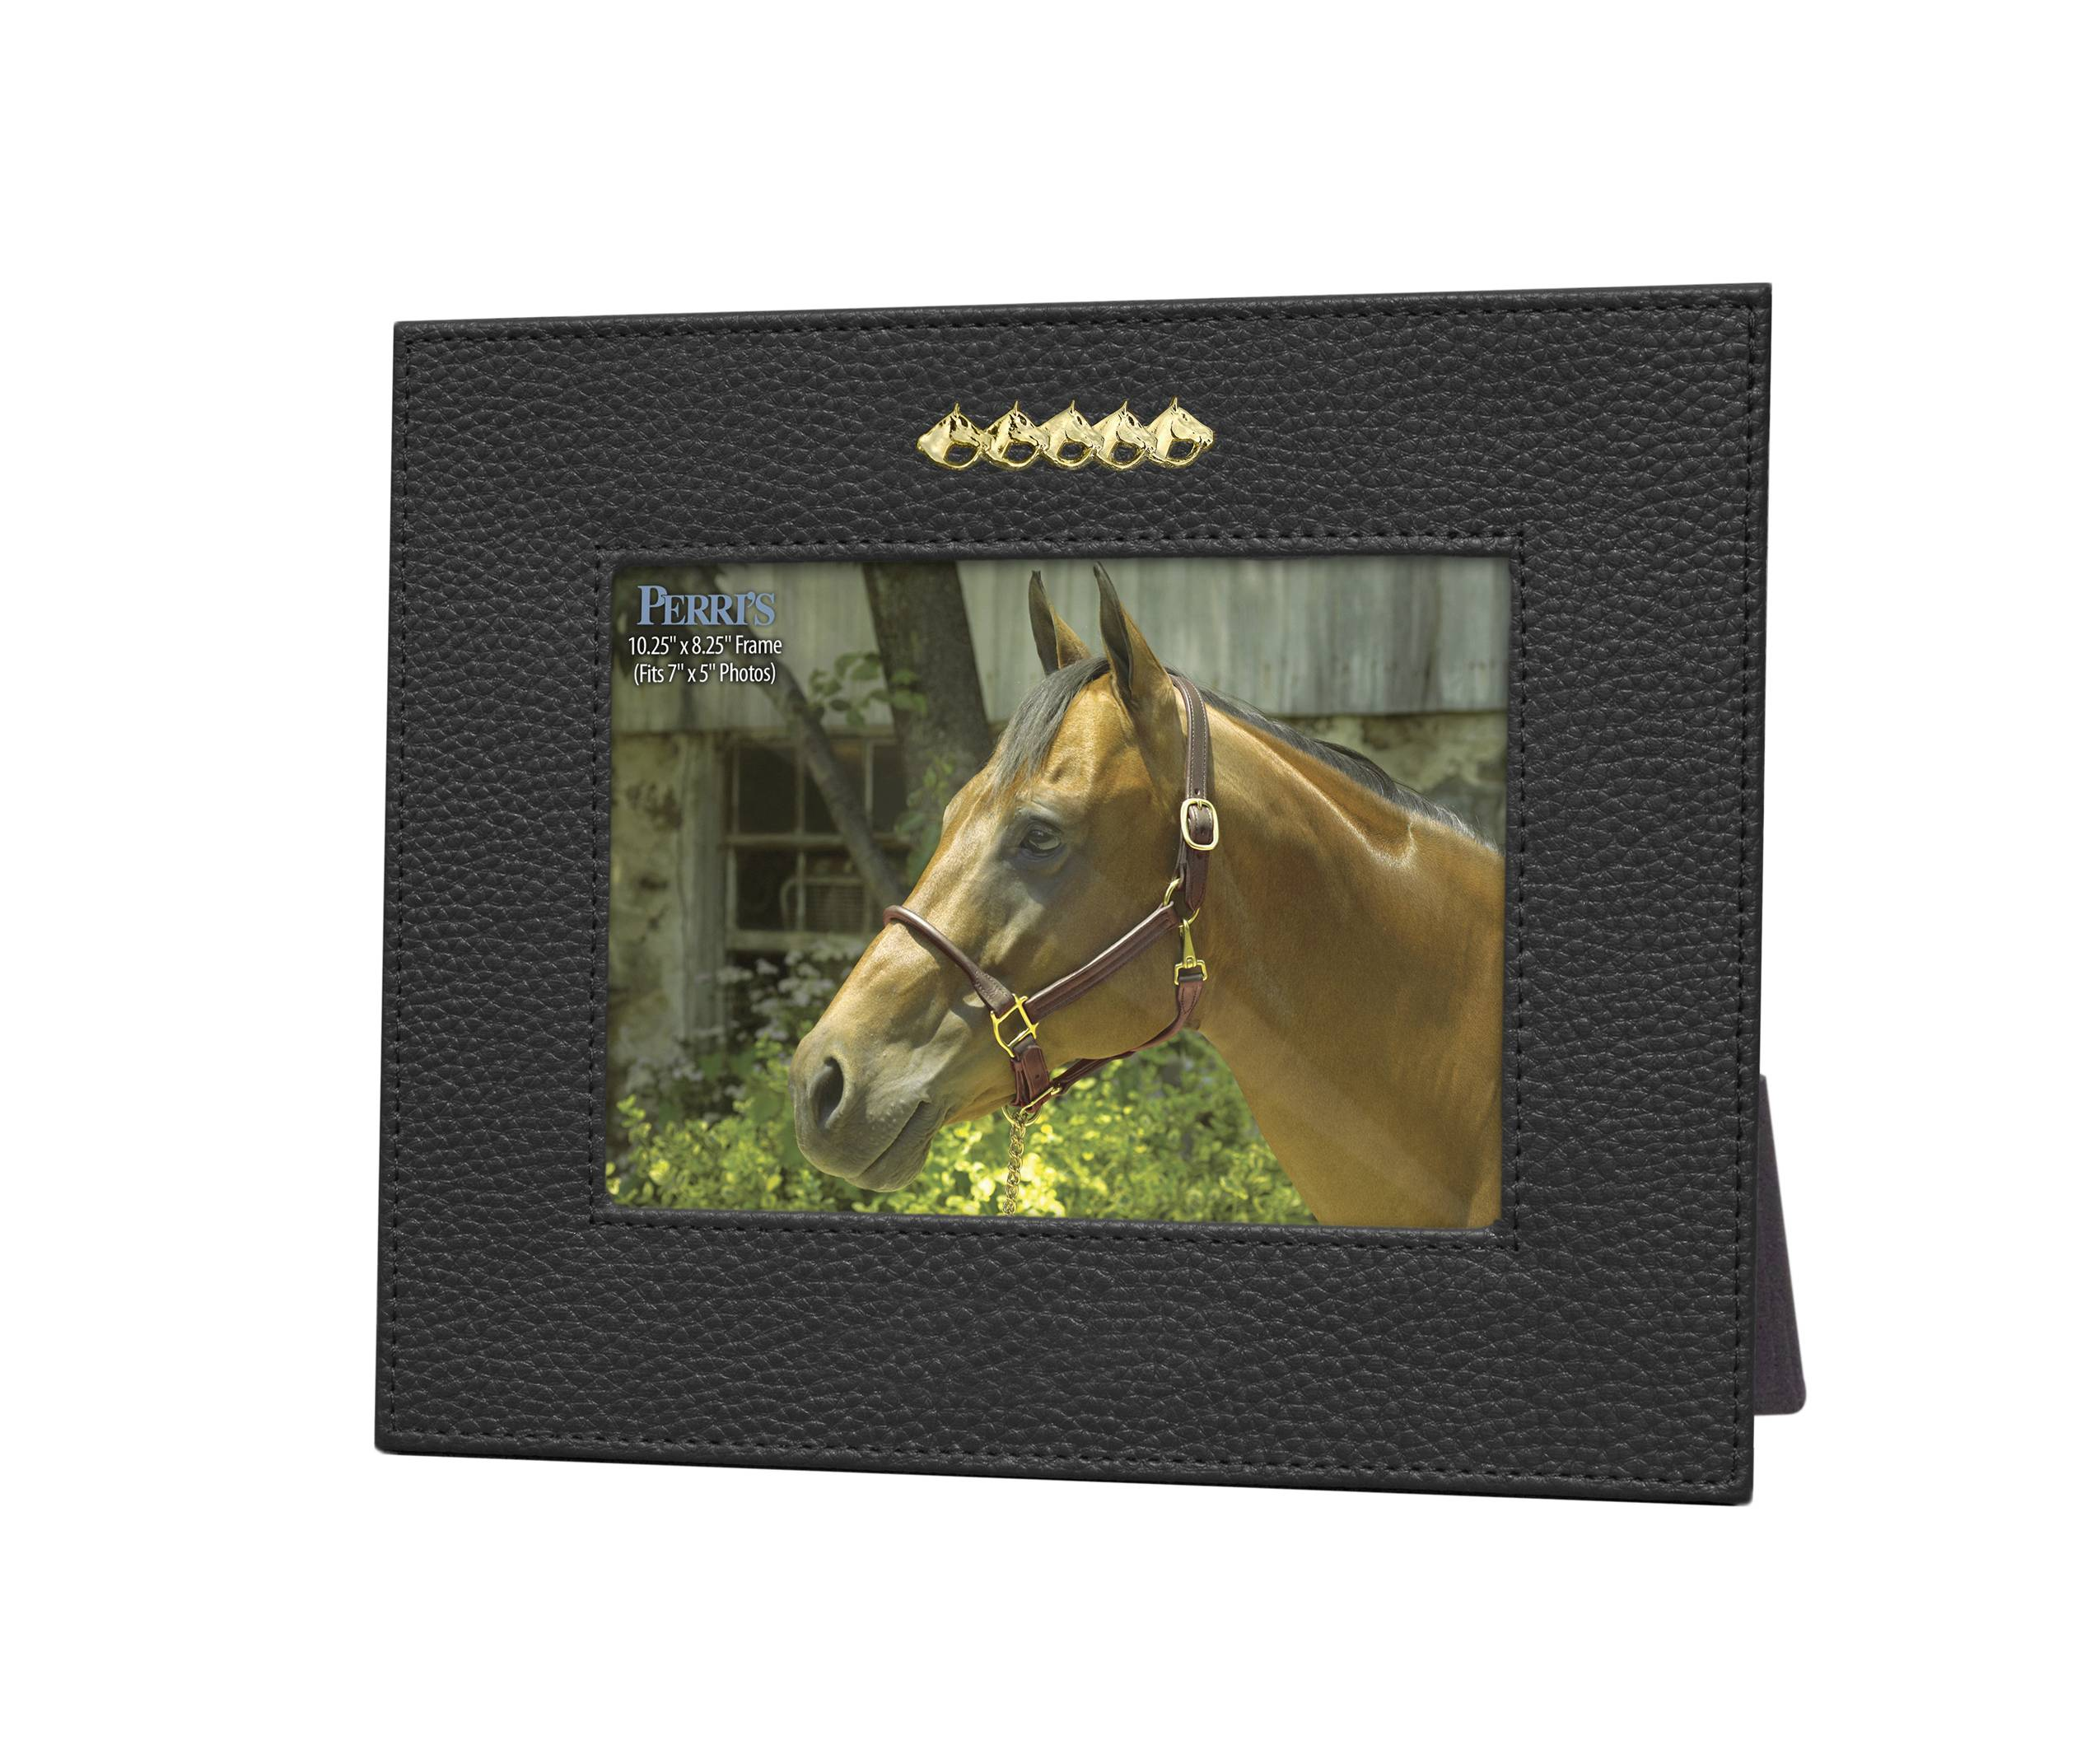 Perri's Picture Frame with Horse Head Accent